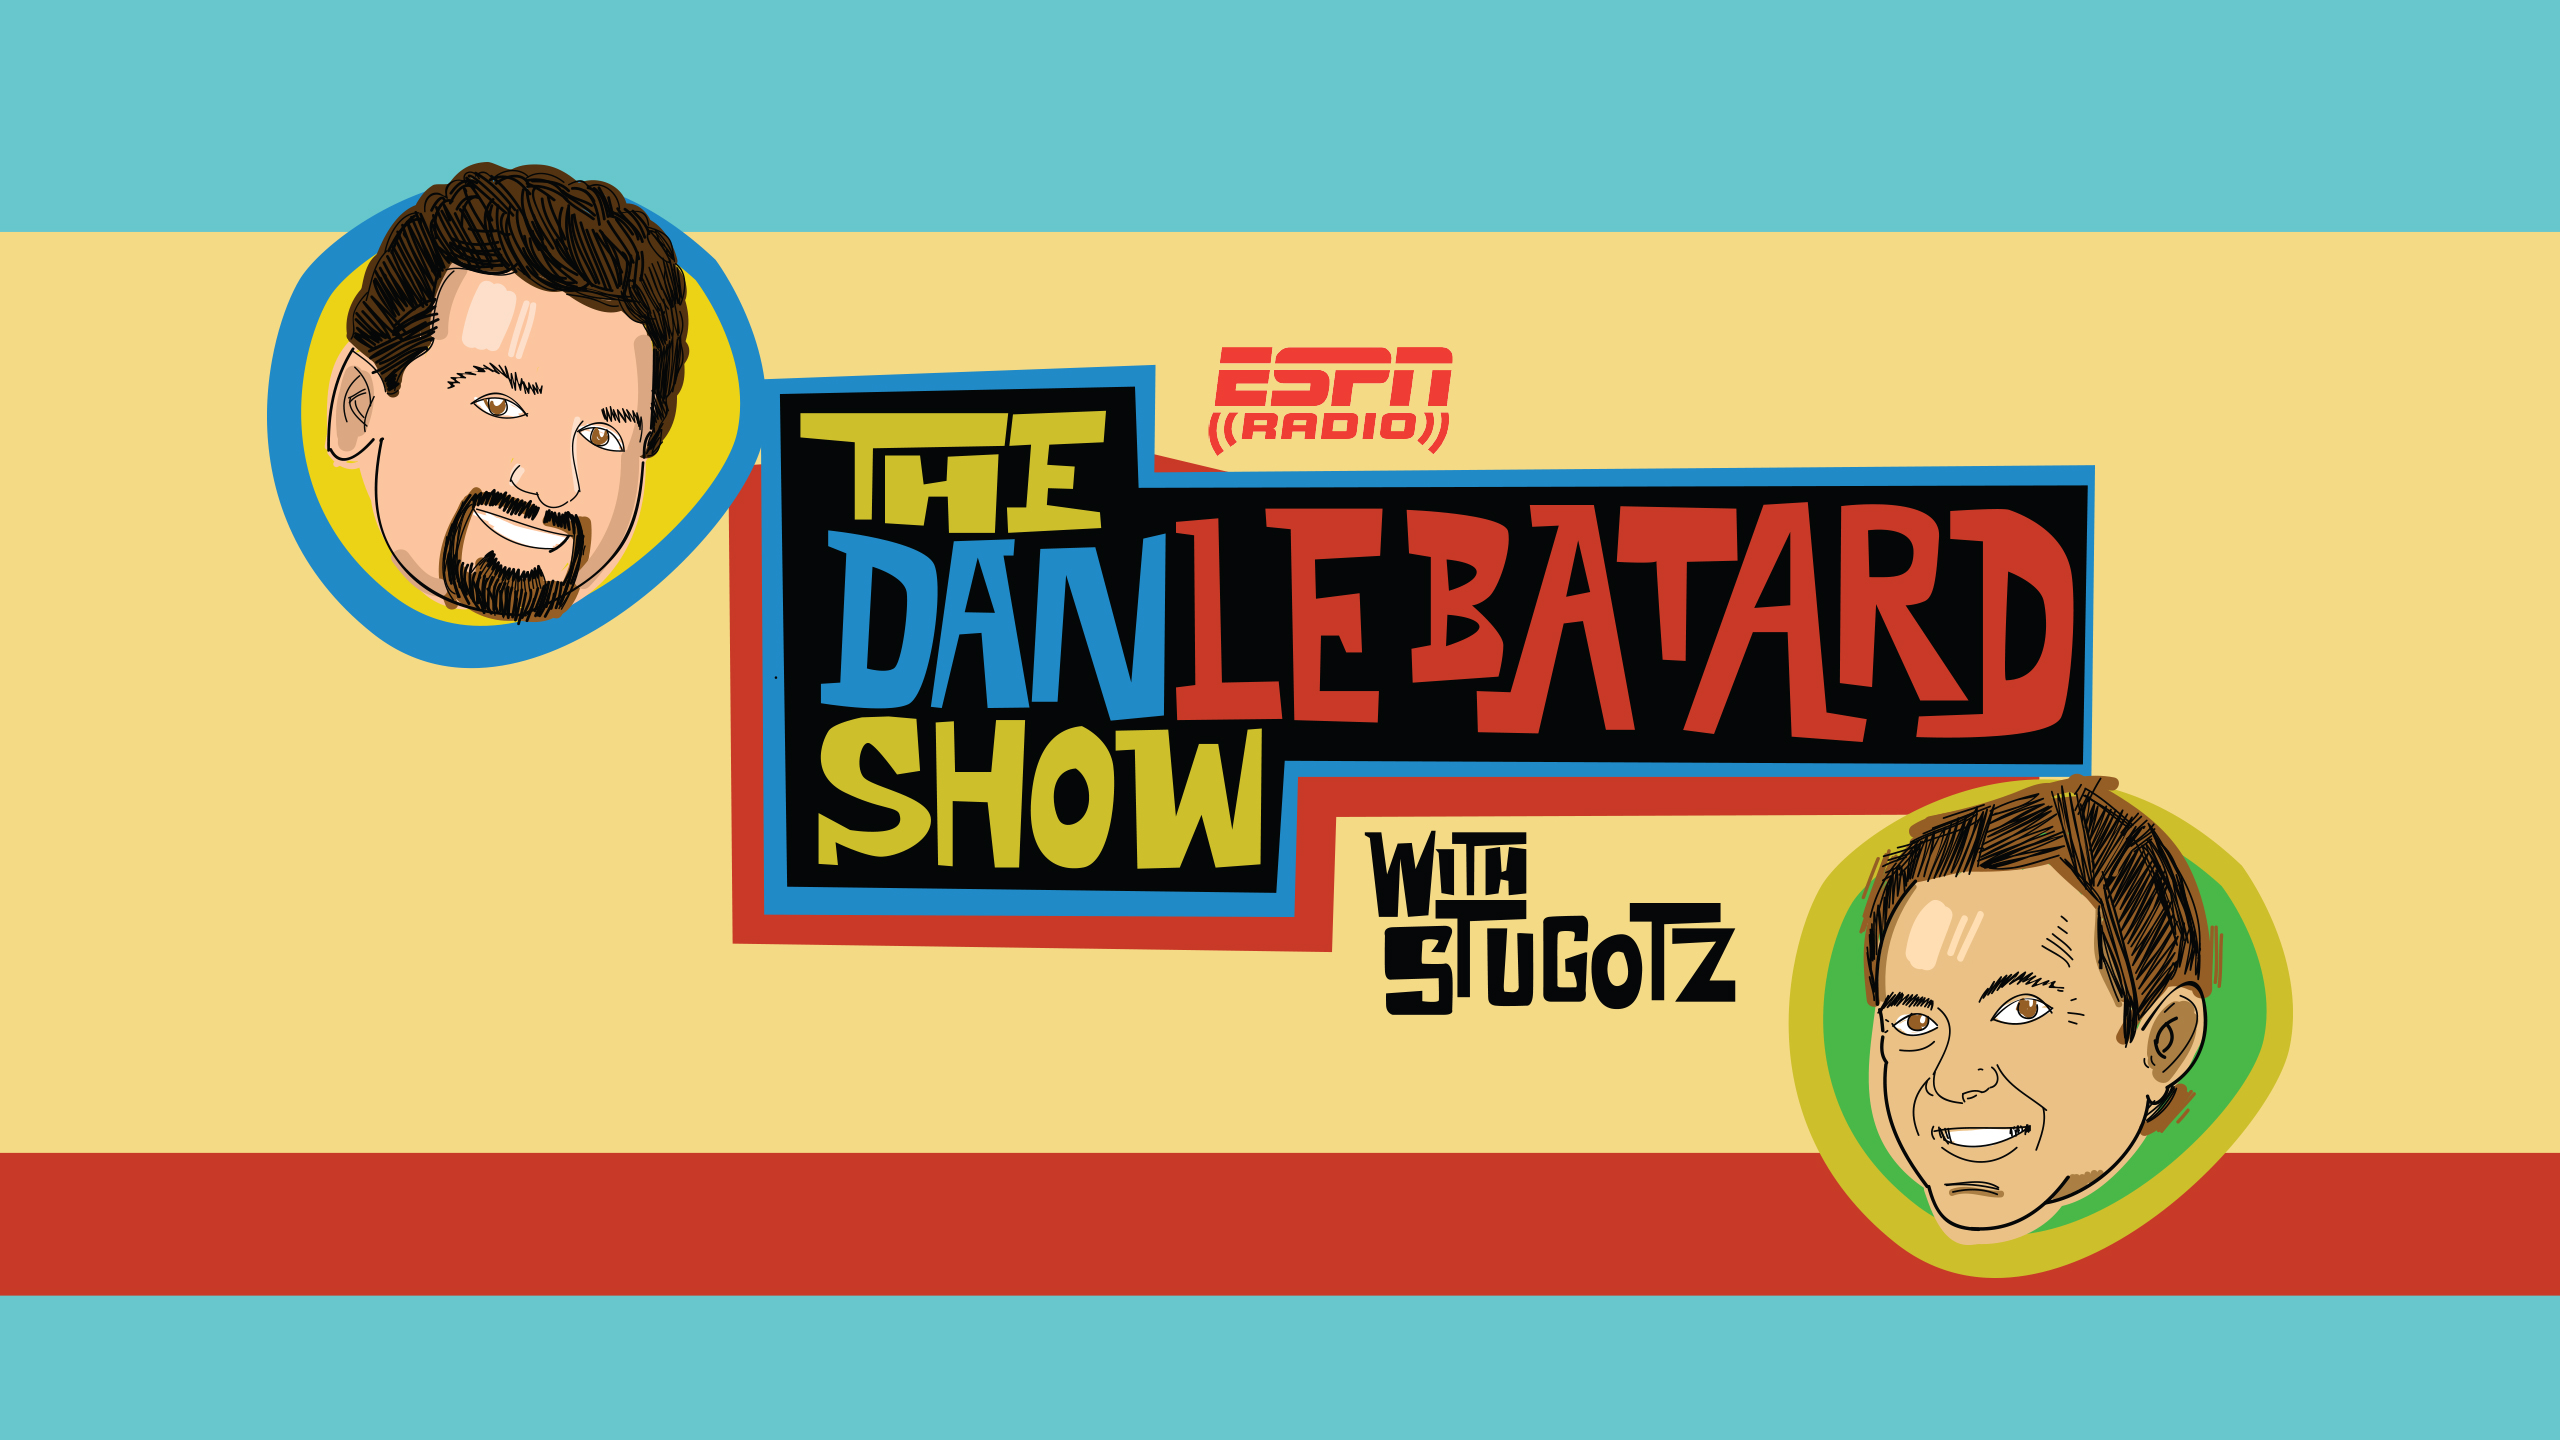 Thu, 2/14 - The Dan Le Batard Show with Stugotz Presented by Progressive